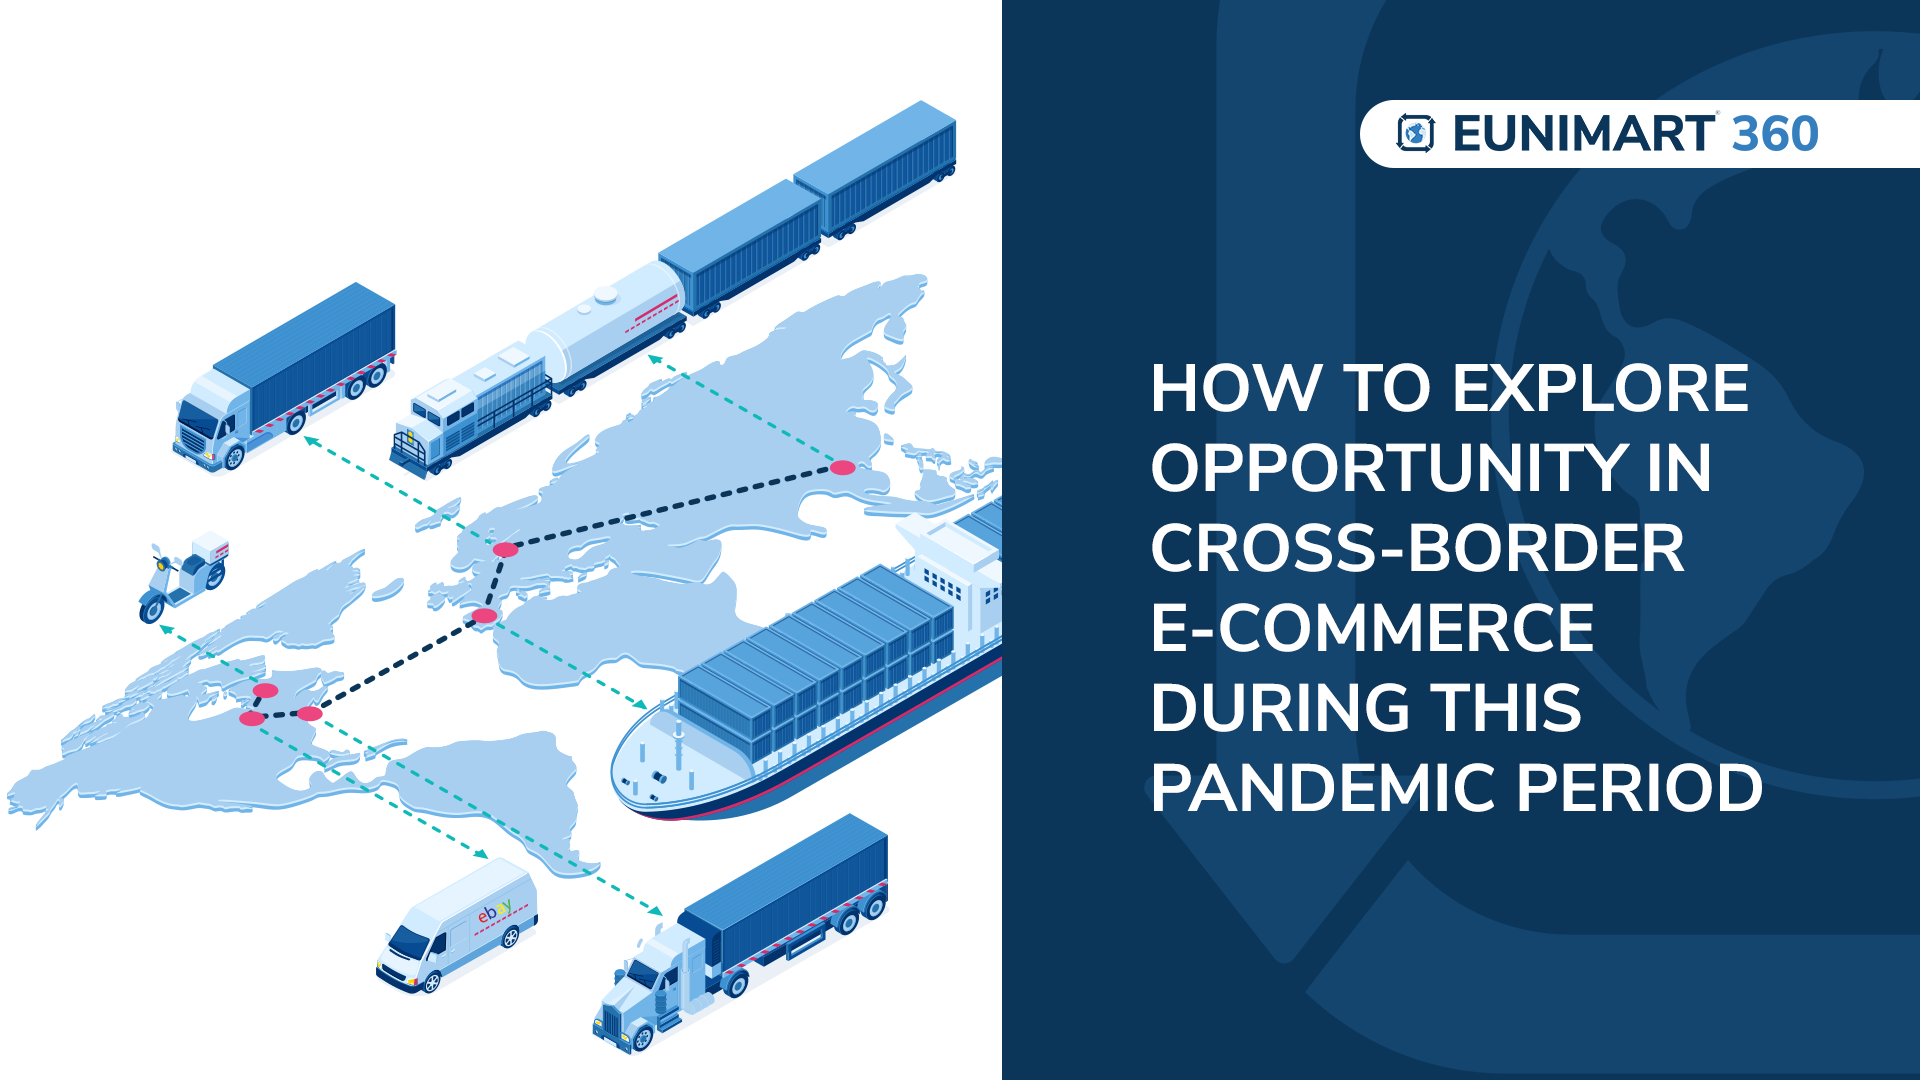 How to explore opportunity in cross-border E-commerce during this pandemic period